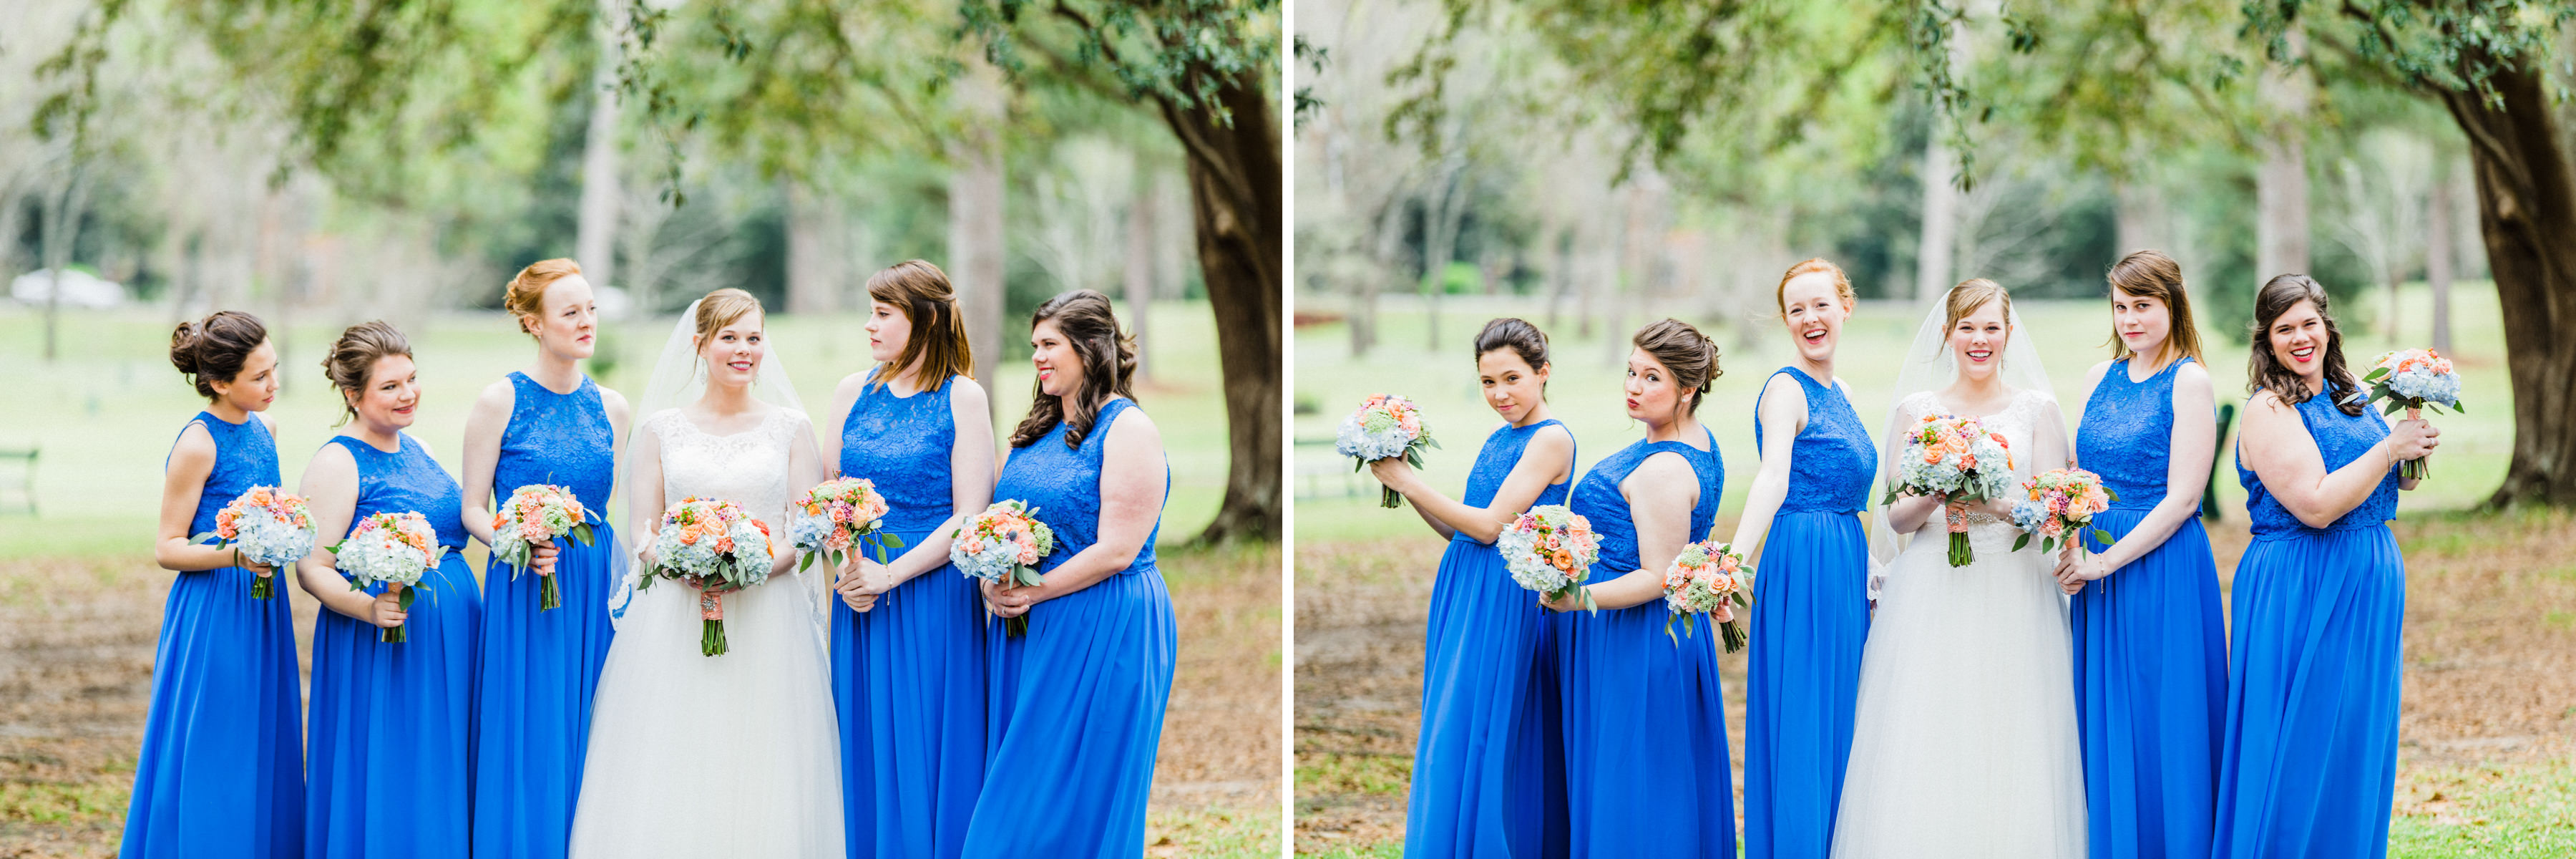 MAULDIN_WEDDING_MONTGOMERY_ALABAMA_WEDDING_PHOTOGRAPHY_38